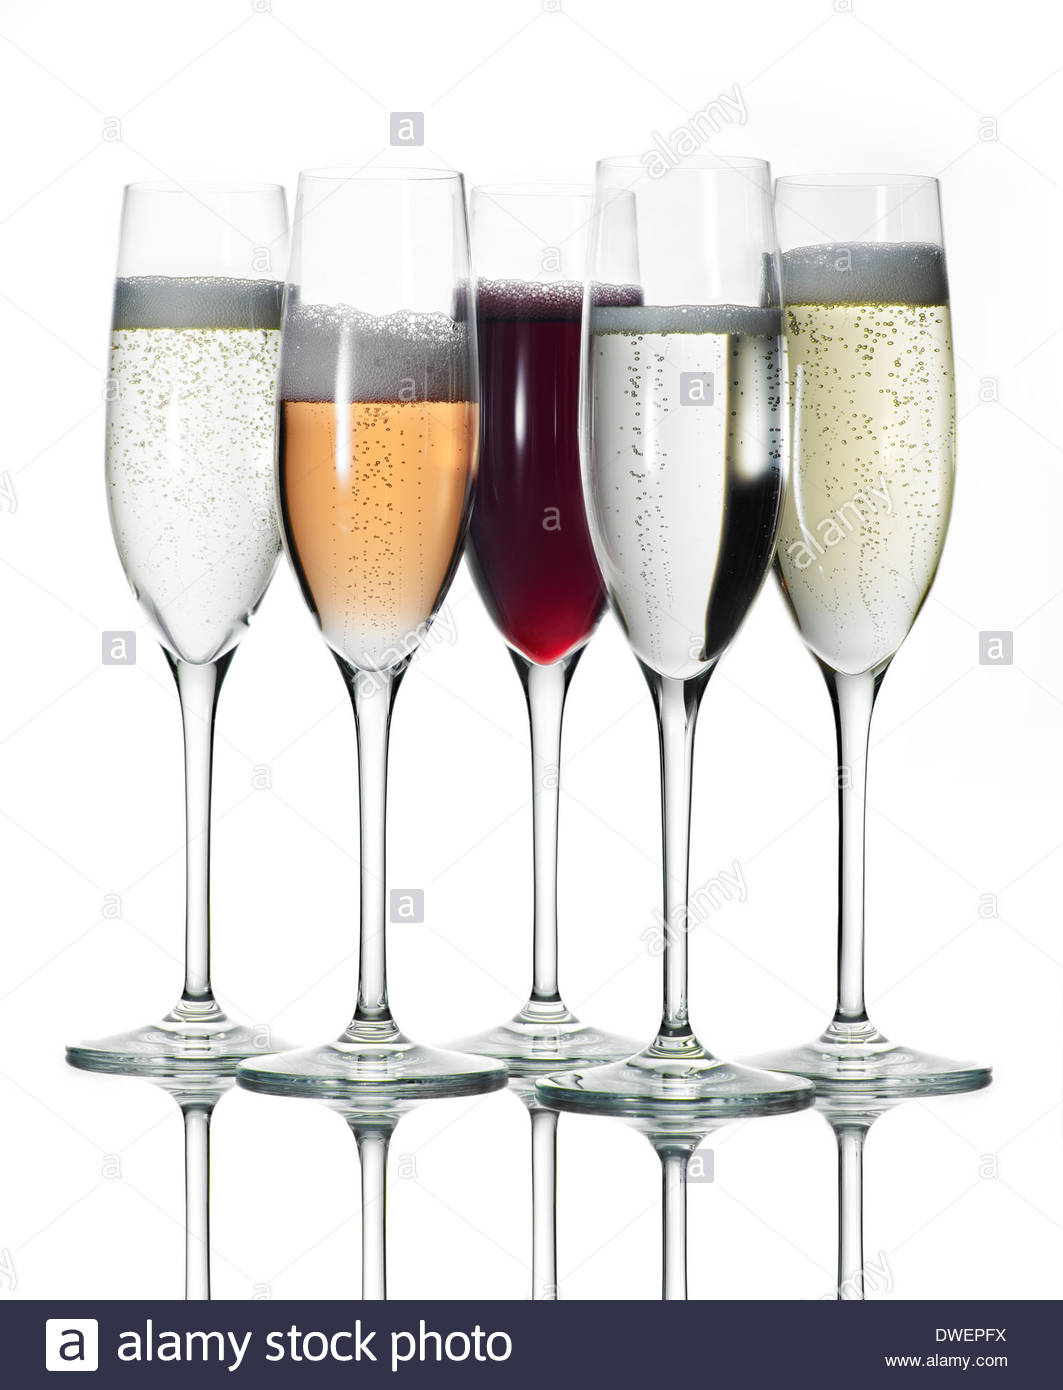 tall stem glasses of variety of bubbly prosecco or champagne shot against white background - Stock Image